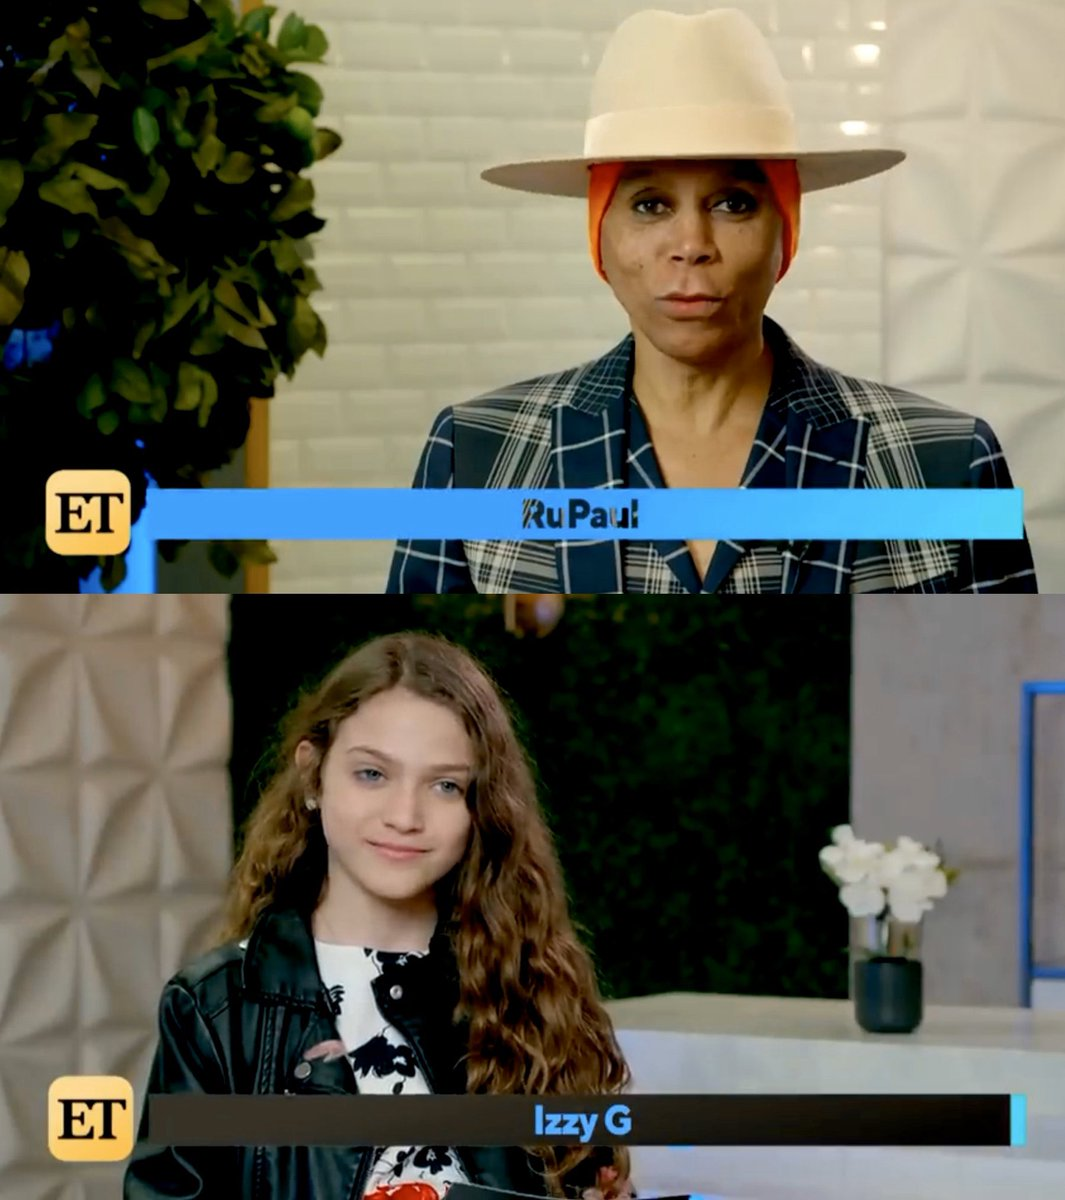 "Ru and I and our interview interviewing each other.  Thank you @etnow!  #AJAndTheQueen #RuPaul #IzzyG   ""AJ and the Queen: RuPaul and Izzy G Spill Show Secrets and Talk Season 2..."